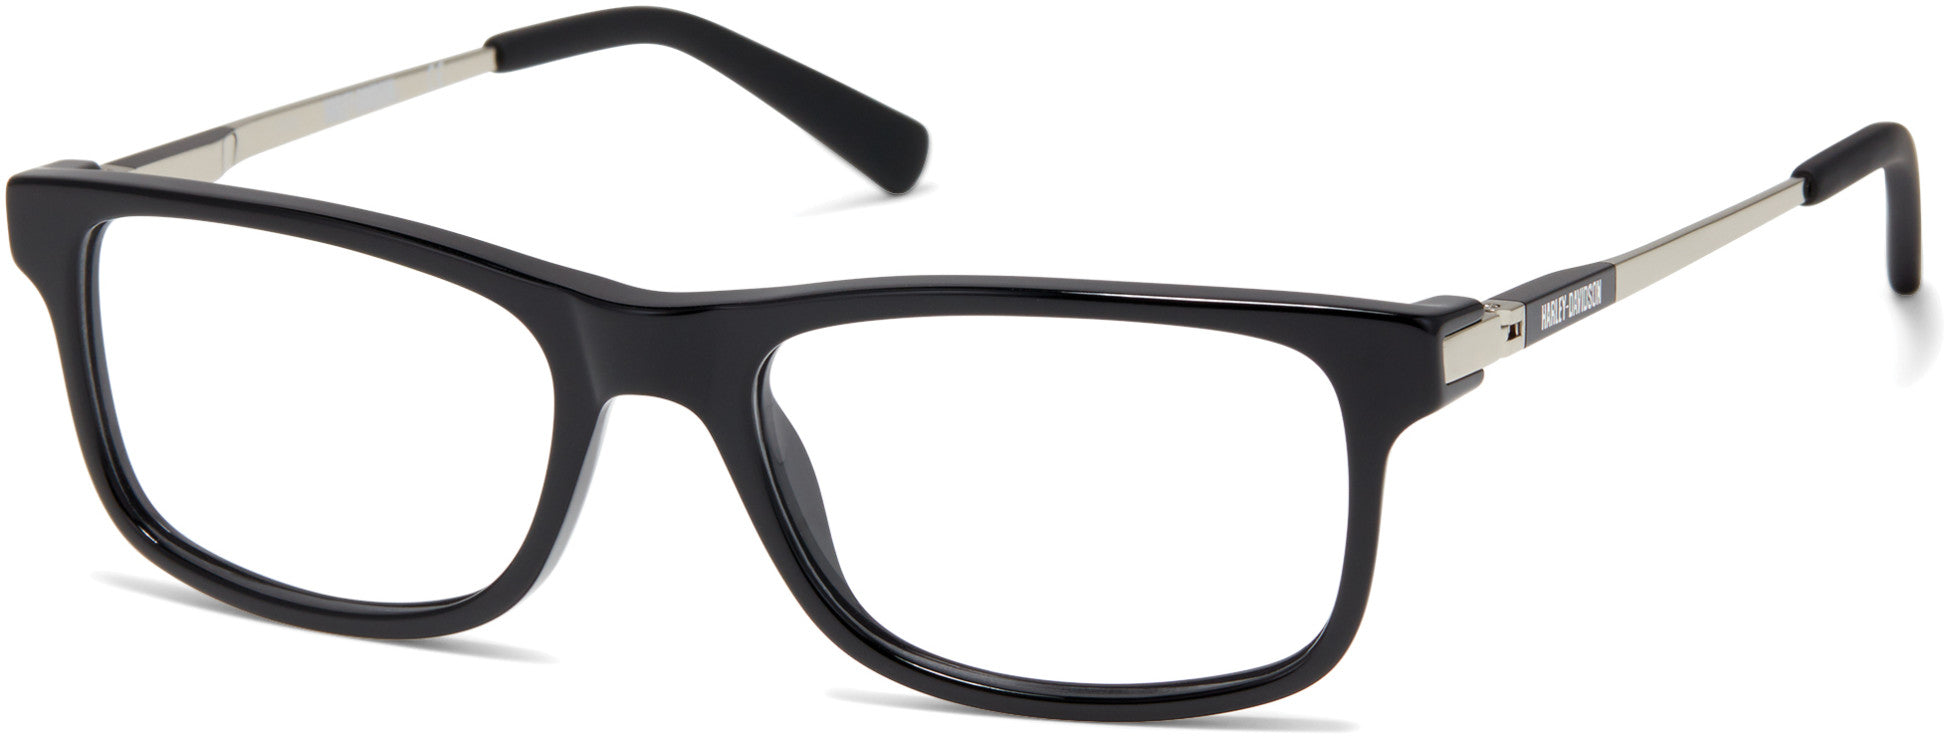 Harley-Davidson HD0143T Rectangular Eyeglasses 001-001 - Shiny Black